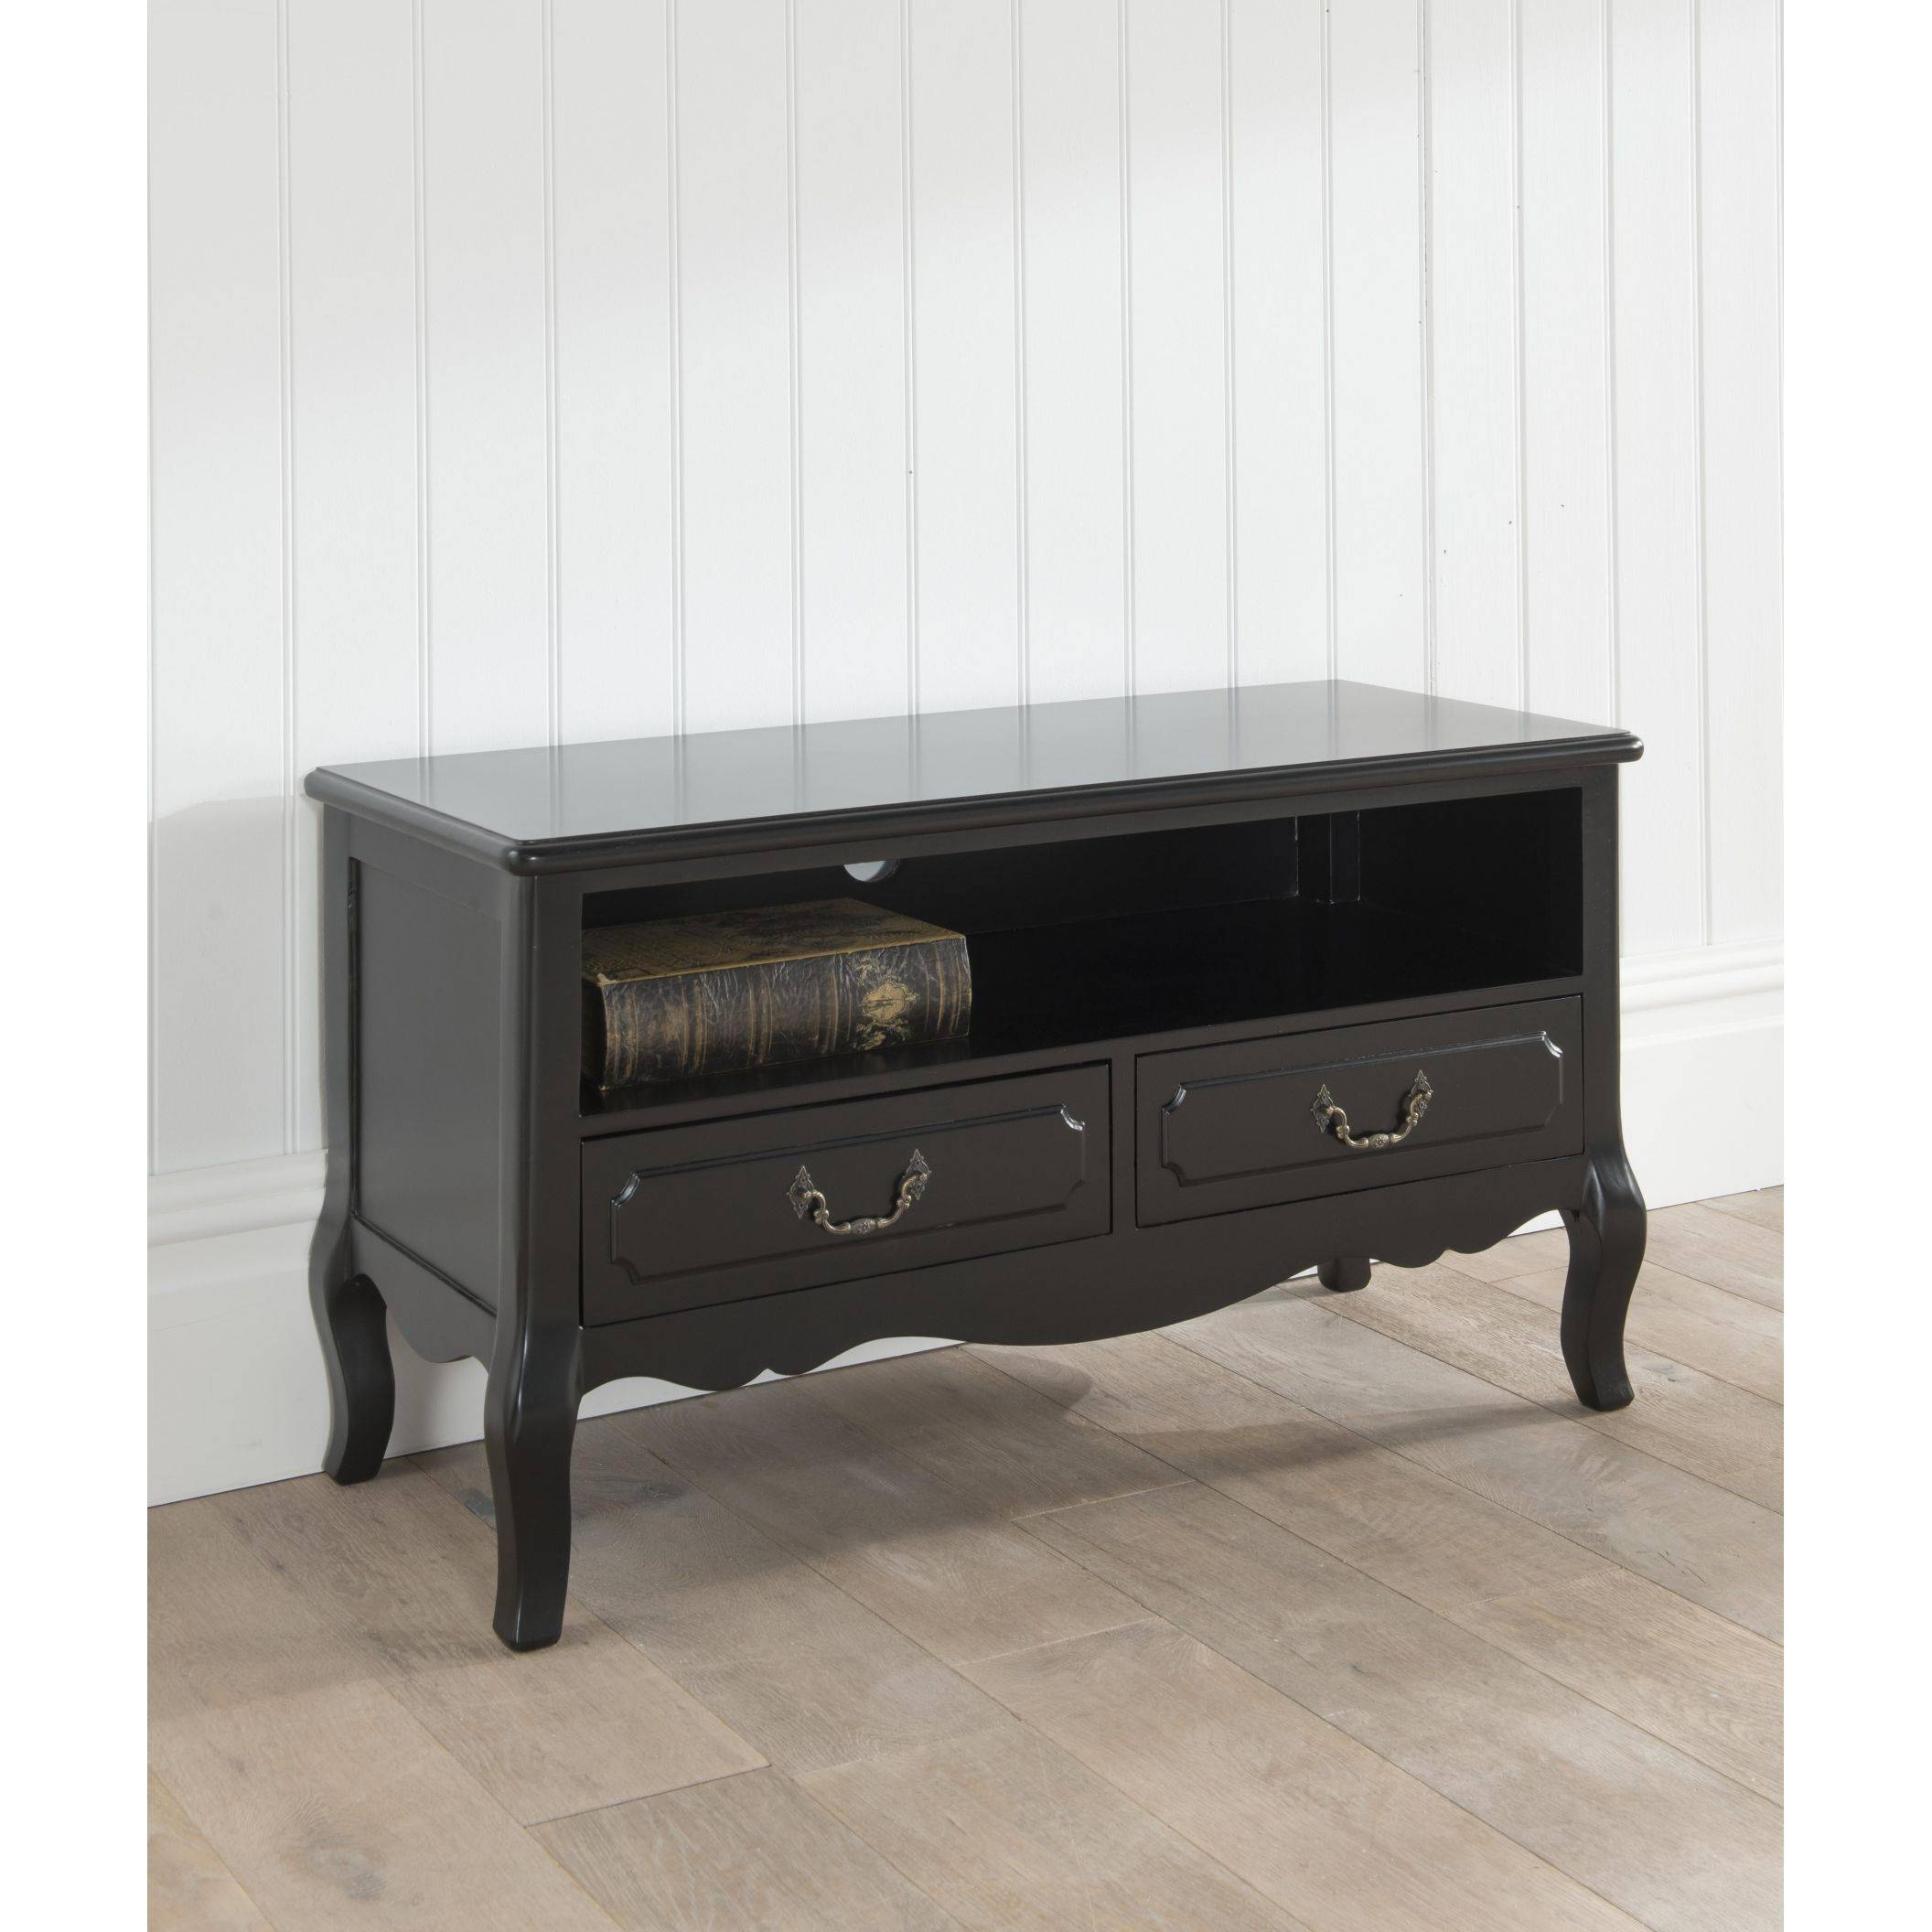 Antique French Tv Stand | Black French Style Furniture With Regard To French Tv Cabinets (View 4 of 15)